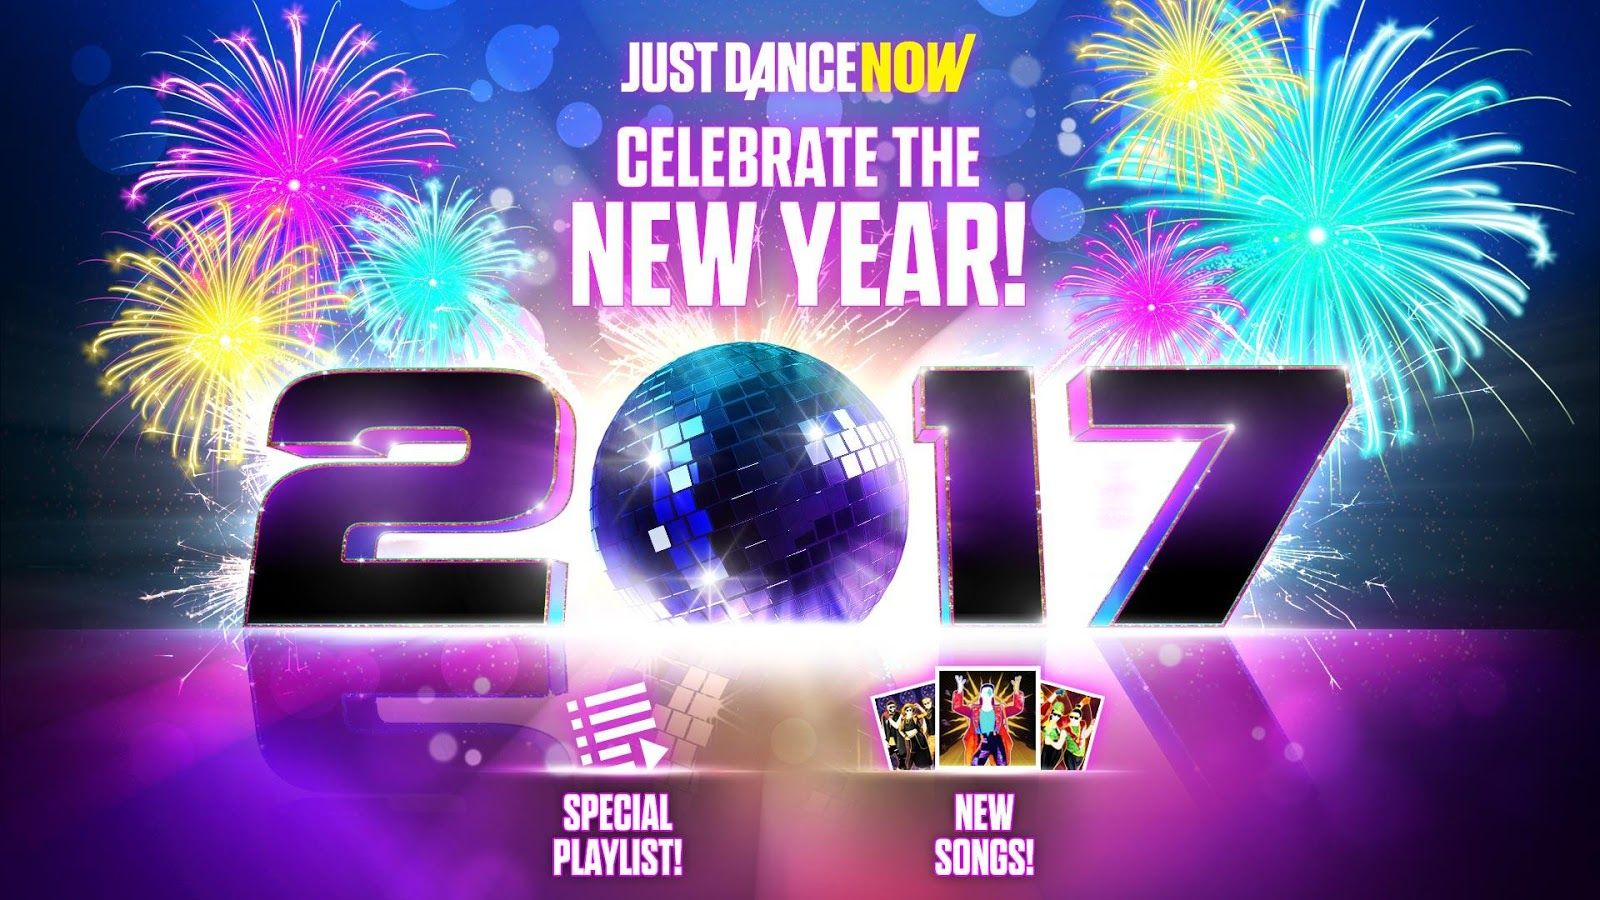 Just Dance Now Hack and Cheats 2018 - How to get Free Coins